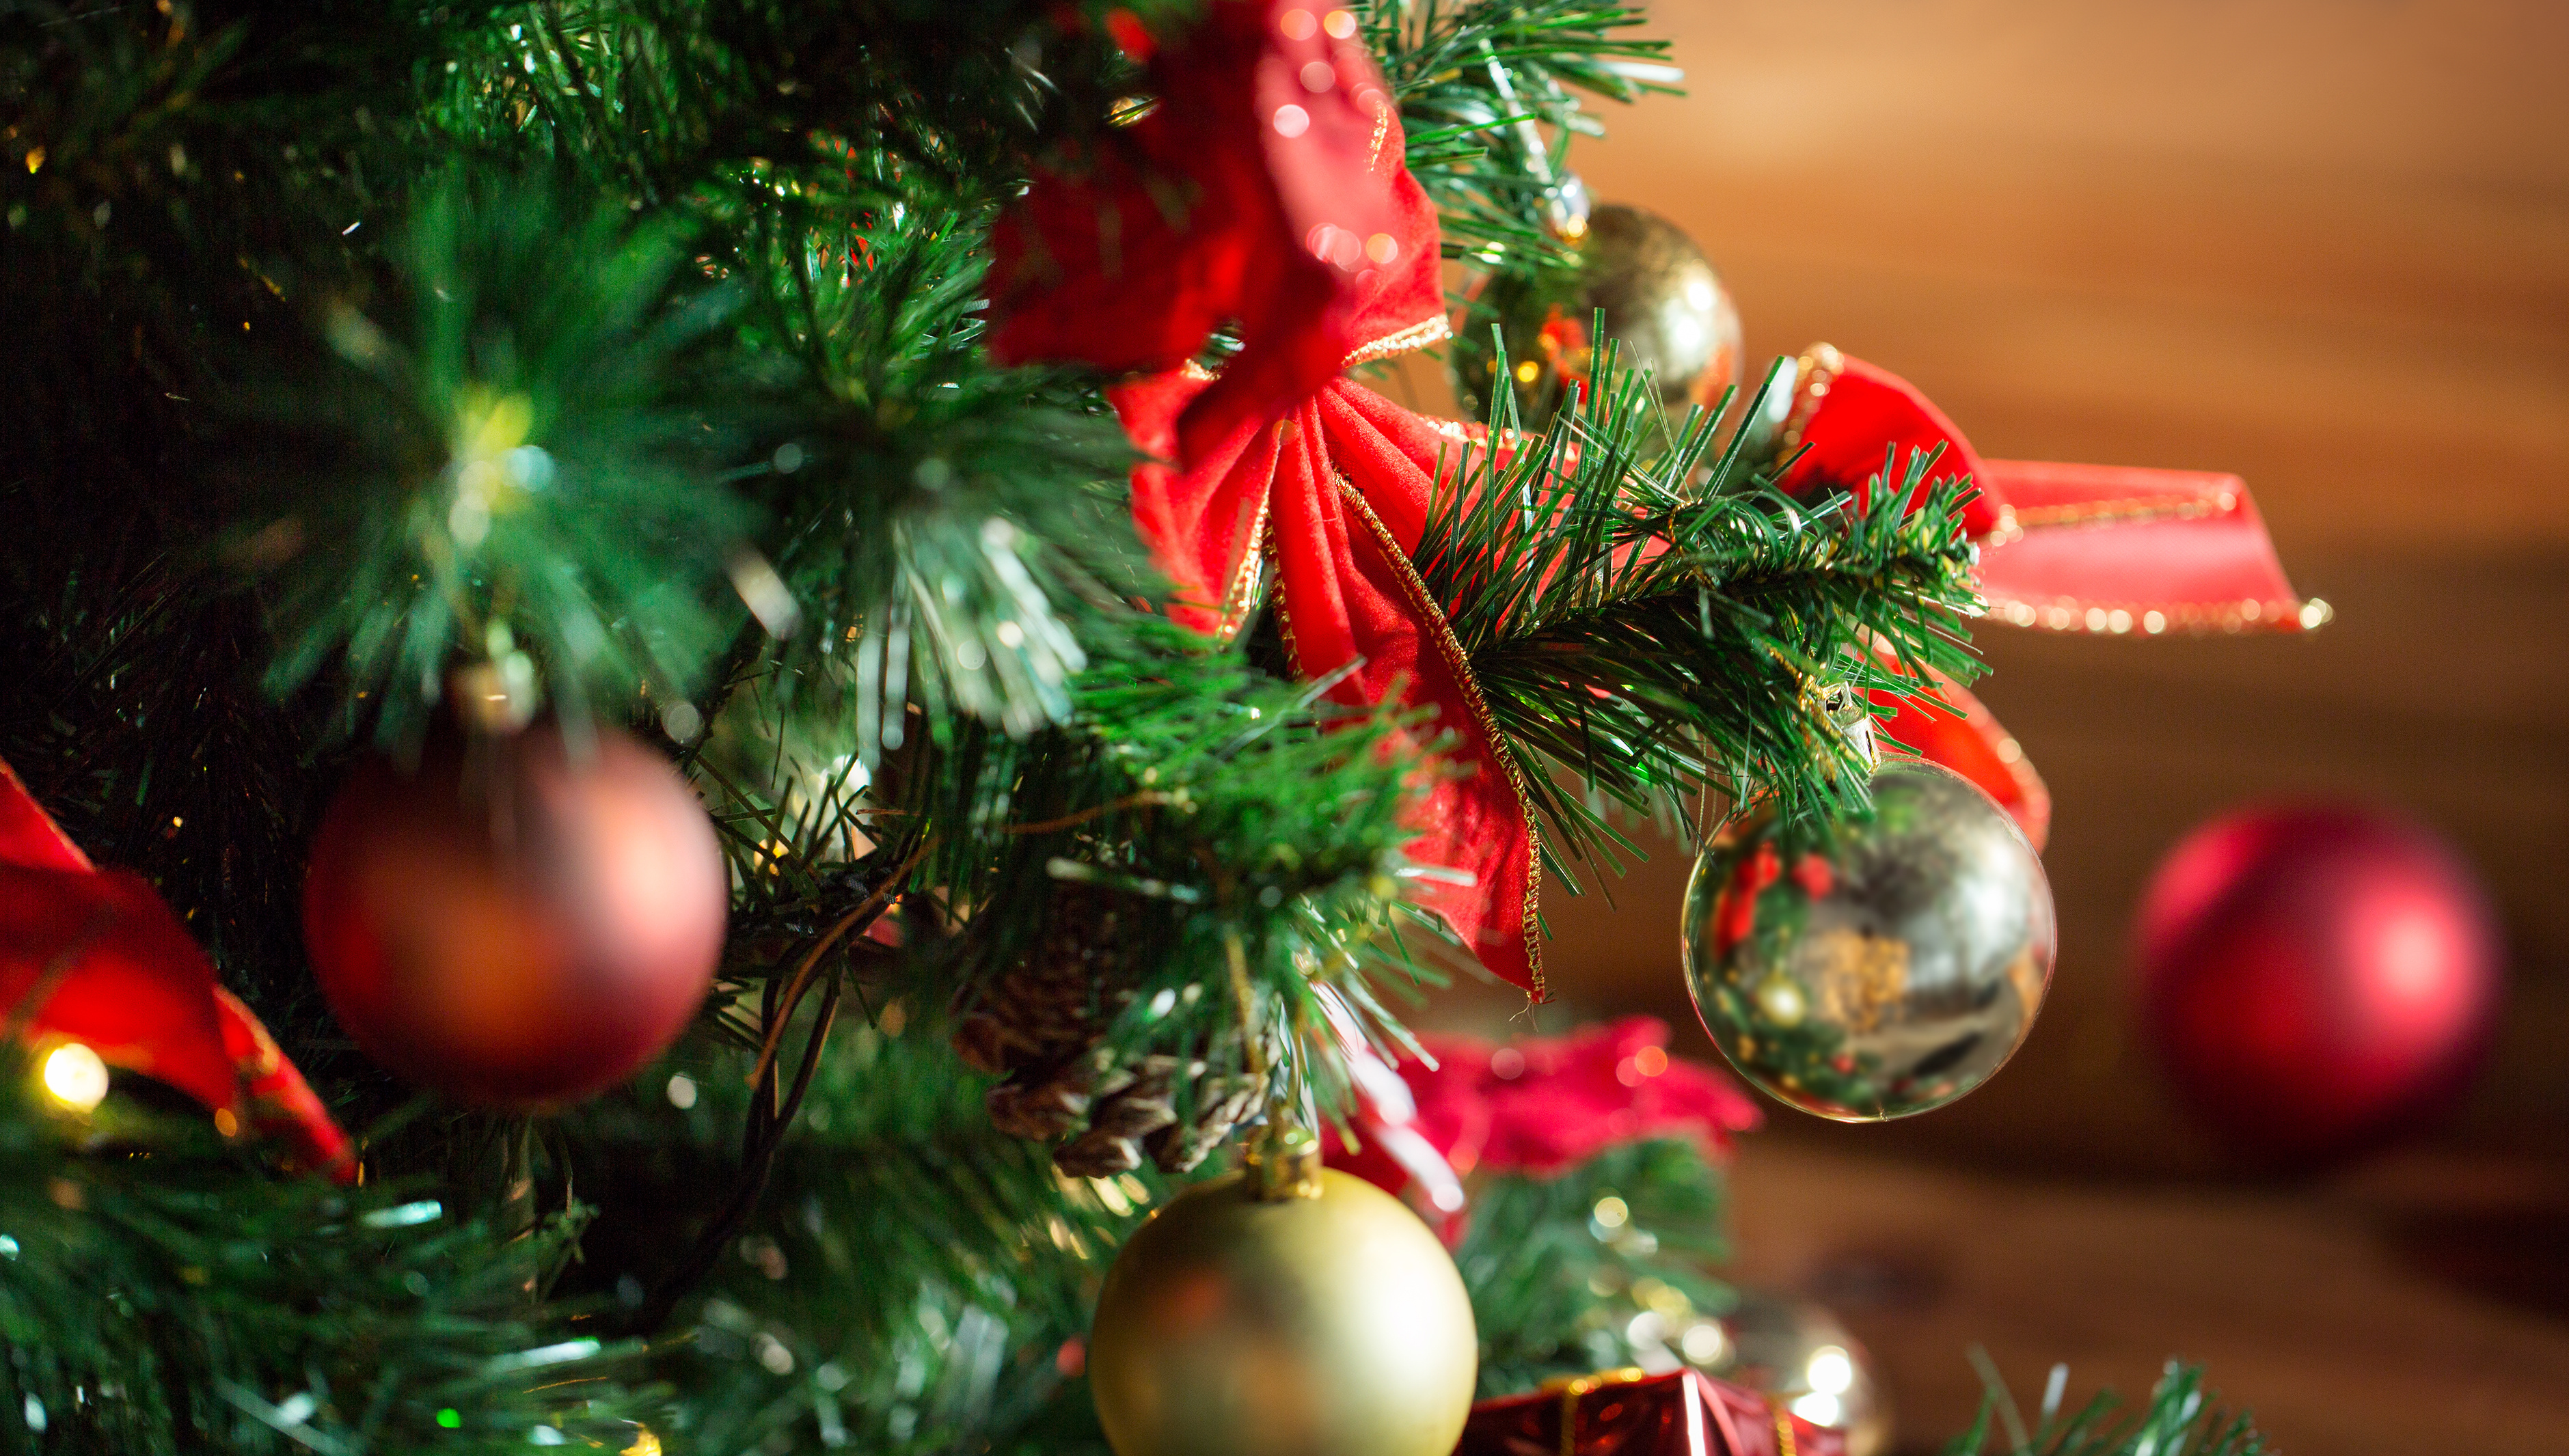 close-up-christmas-tree-ornaments